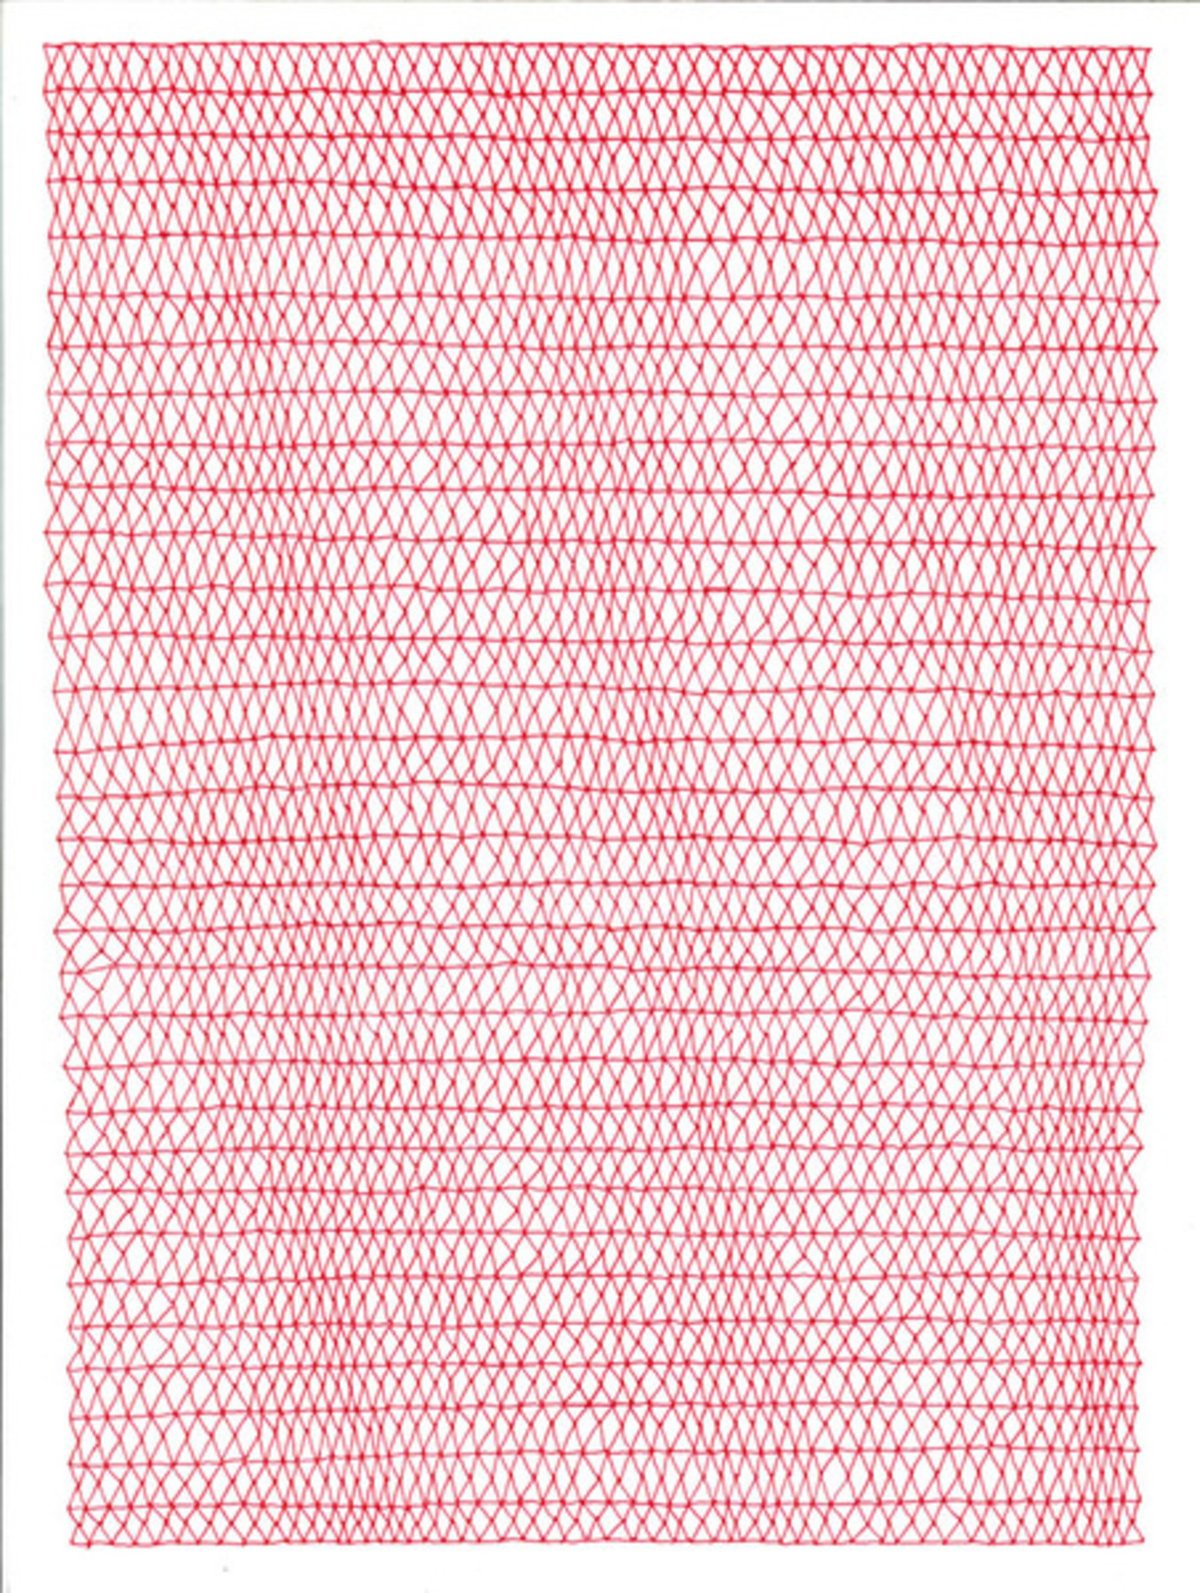 Robert Lansden, Untitled 4, 2010